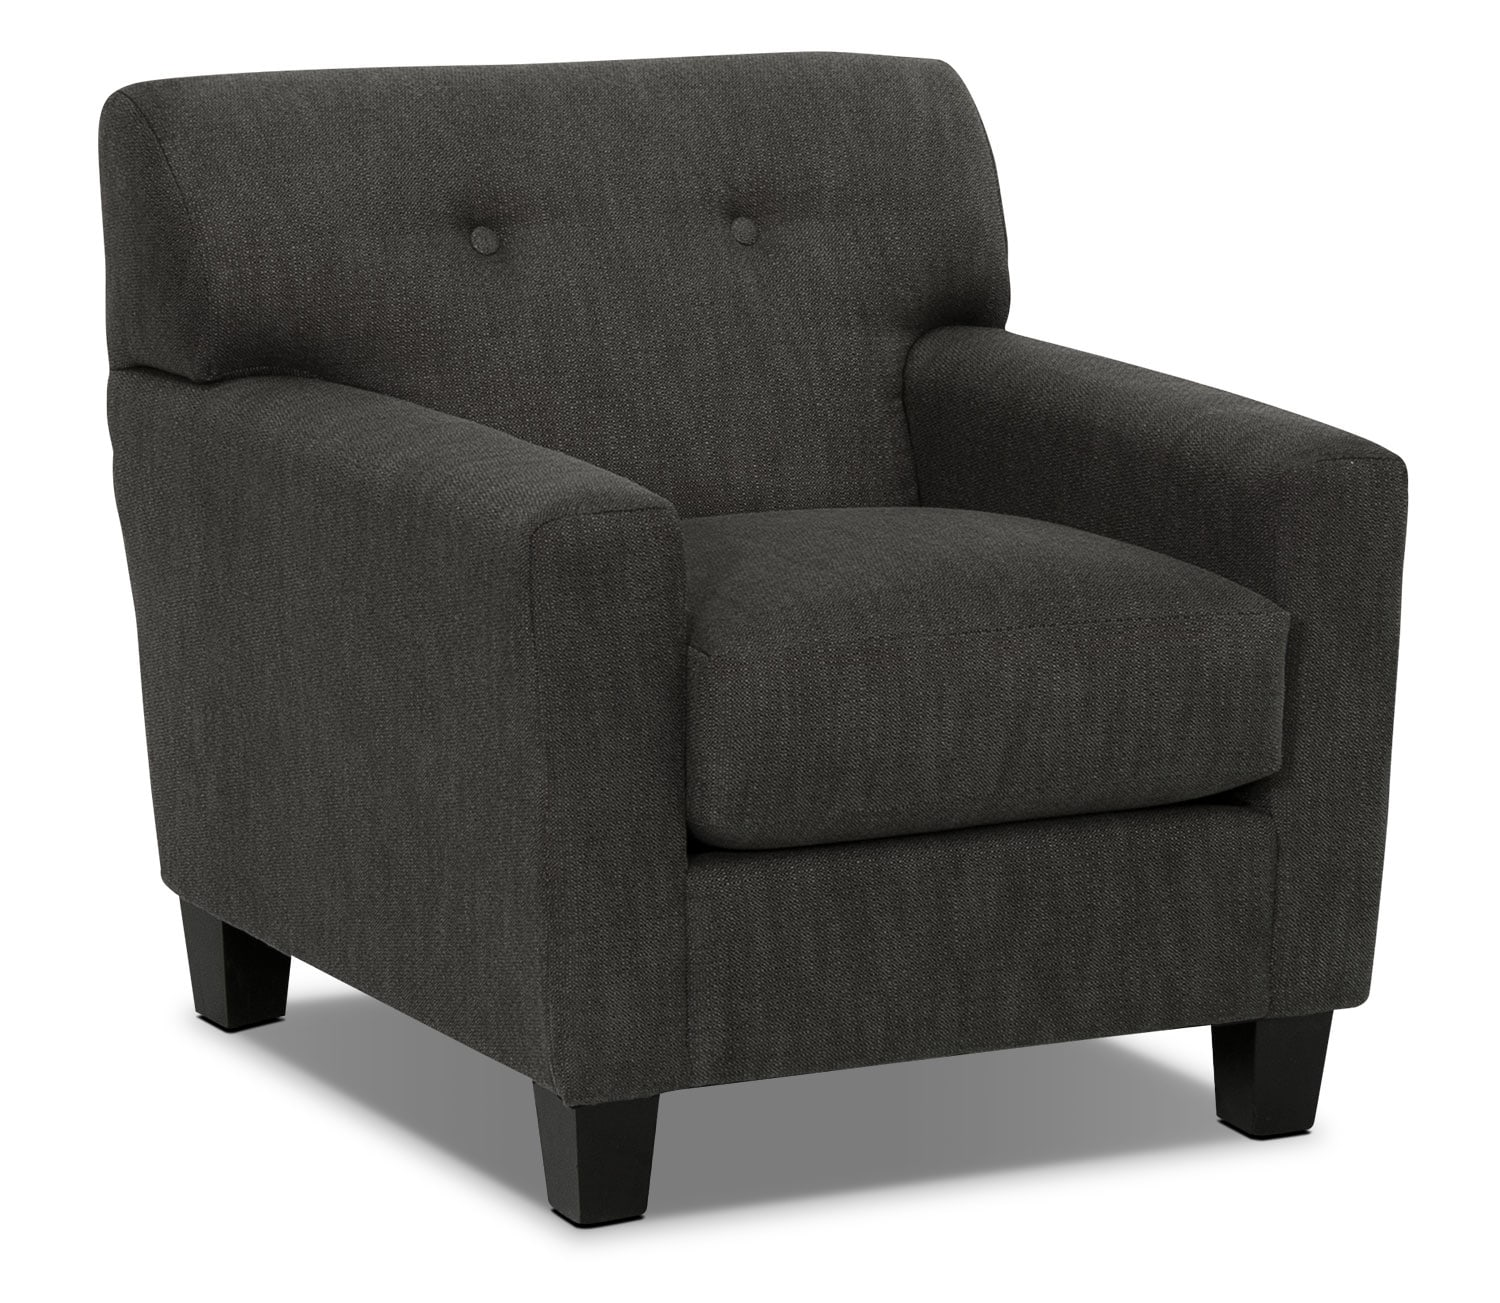 Aubrey Linen-Look Fabric Chair - Charcoal